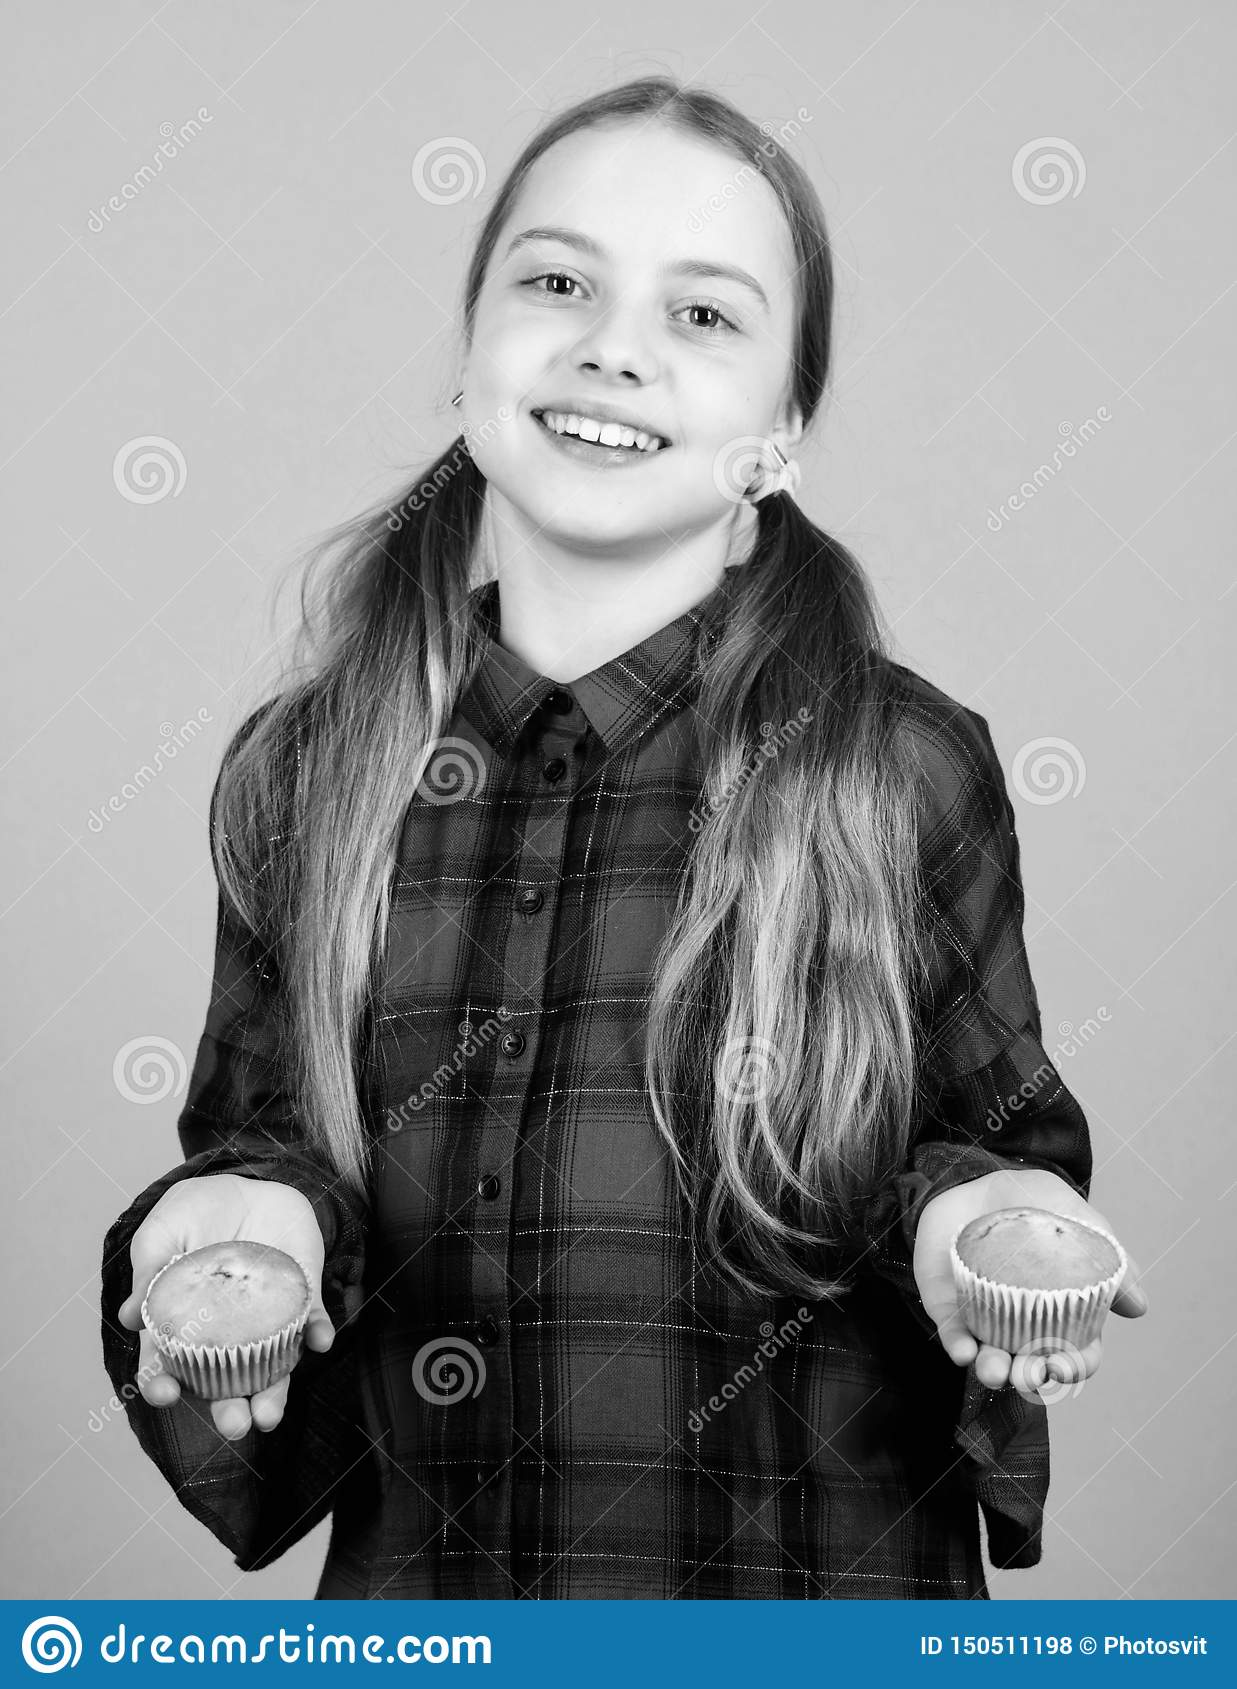 Sharing cakes for two. Happy little girl holding fairy cakes. Small child happy smiling with cup cakes. Cheerful kid